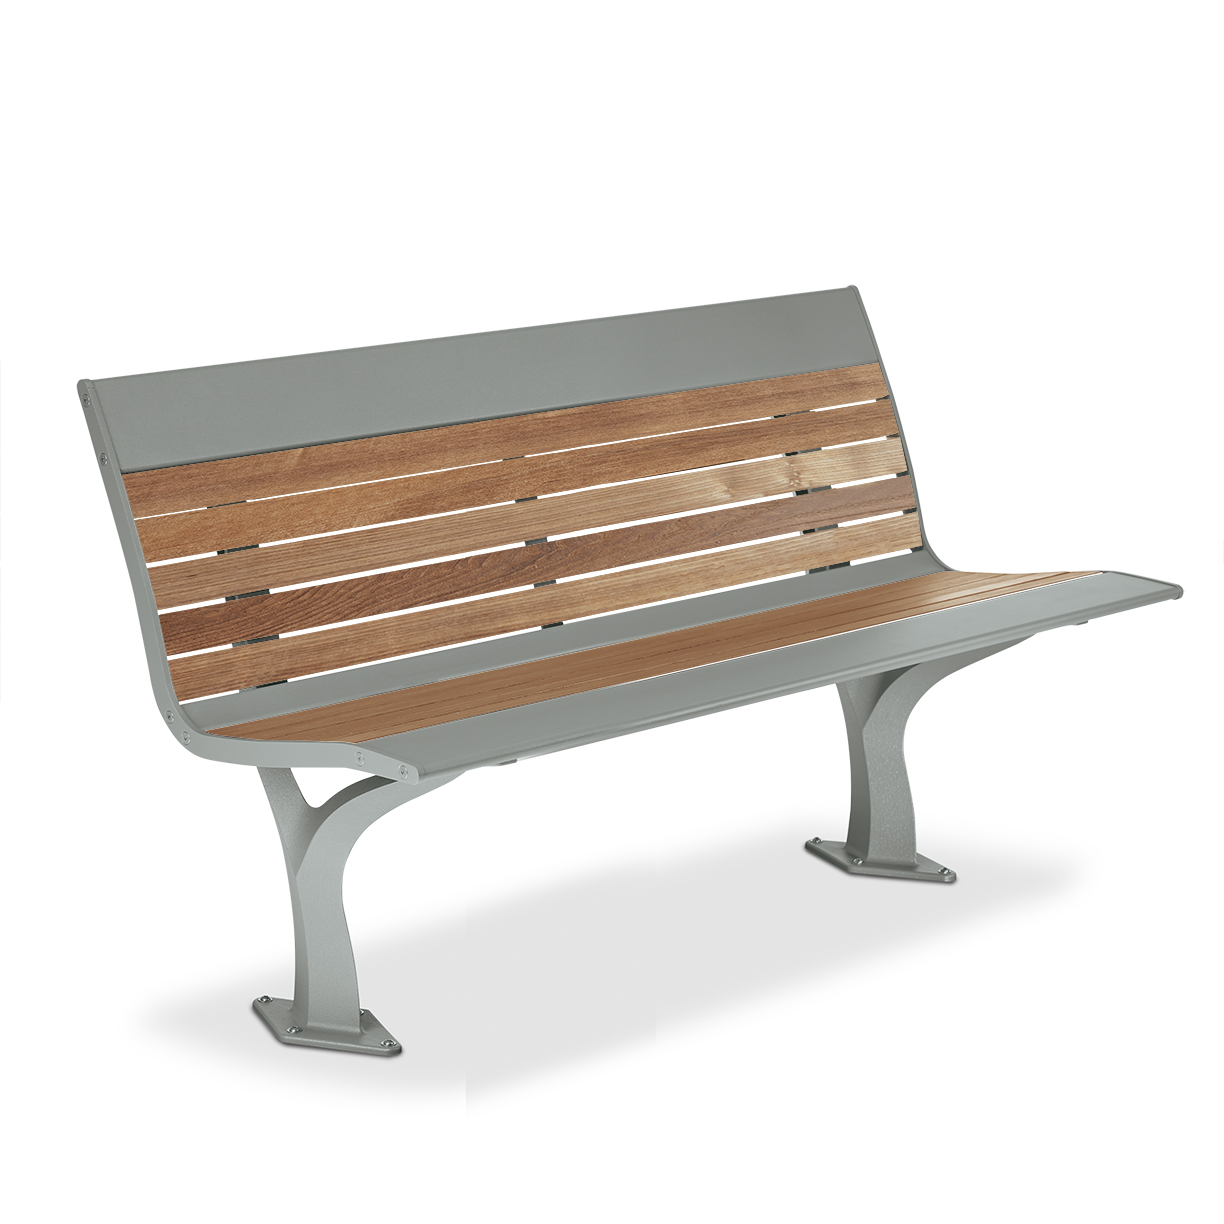 AL1984T  Allure Collection Thermony Slat 4' Contour Bench